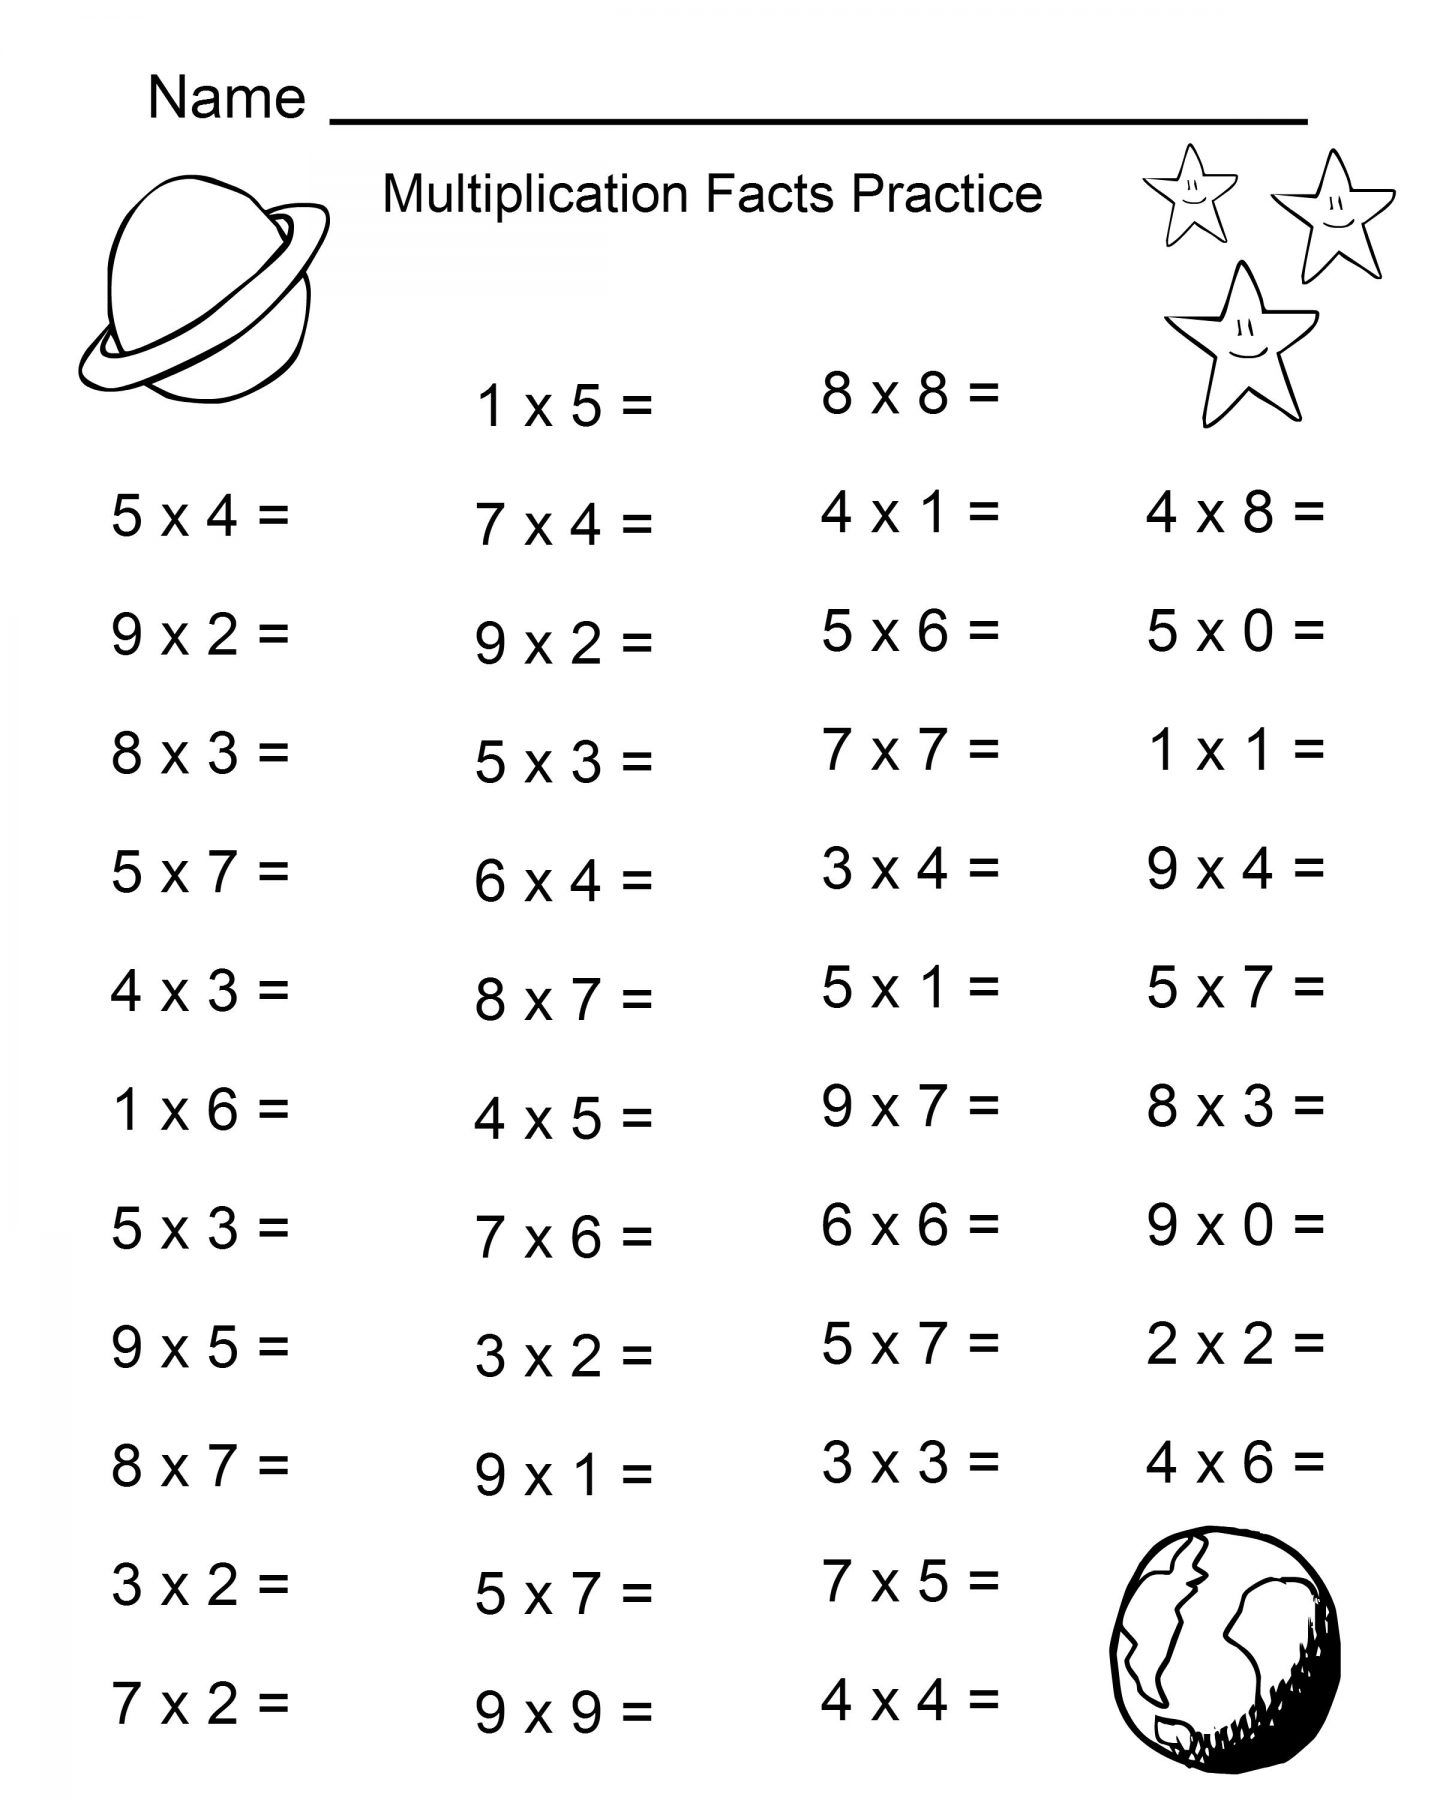 Image Result For Printable Times Tables Worksheets